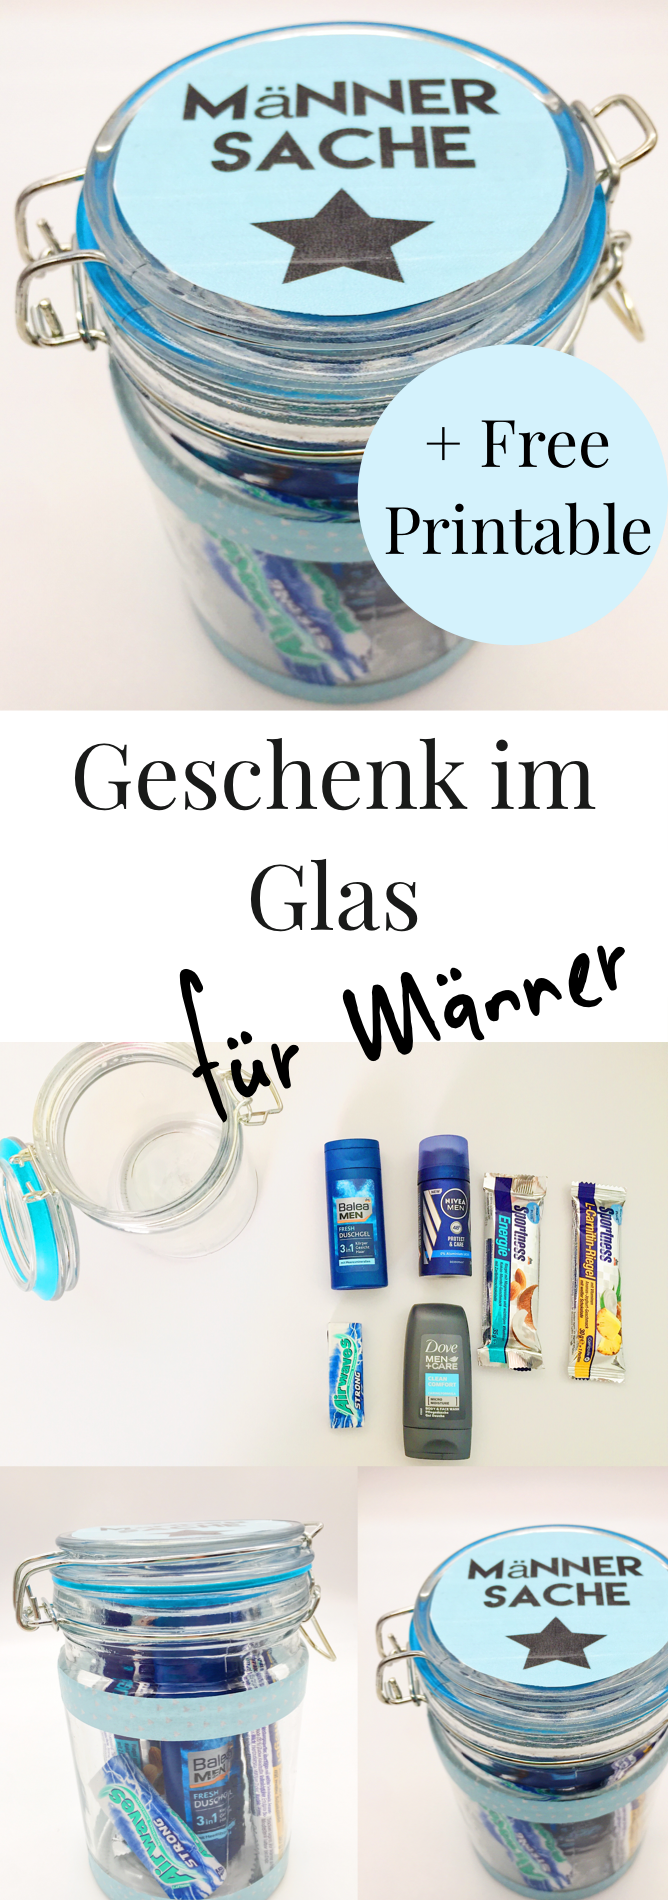 diy geschenke im glas selber machen diy pinterest gifts christmas i christmas gifts. Black Bedroom Furniture Sets. Home Design Ideas